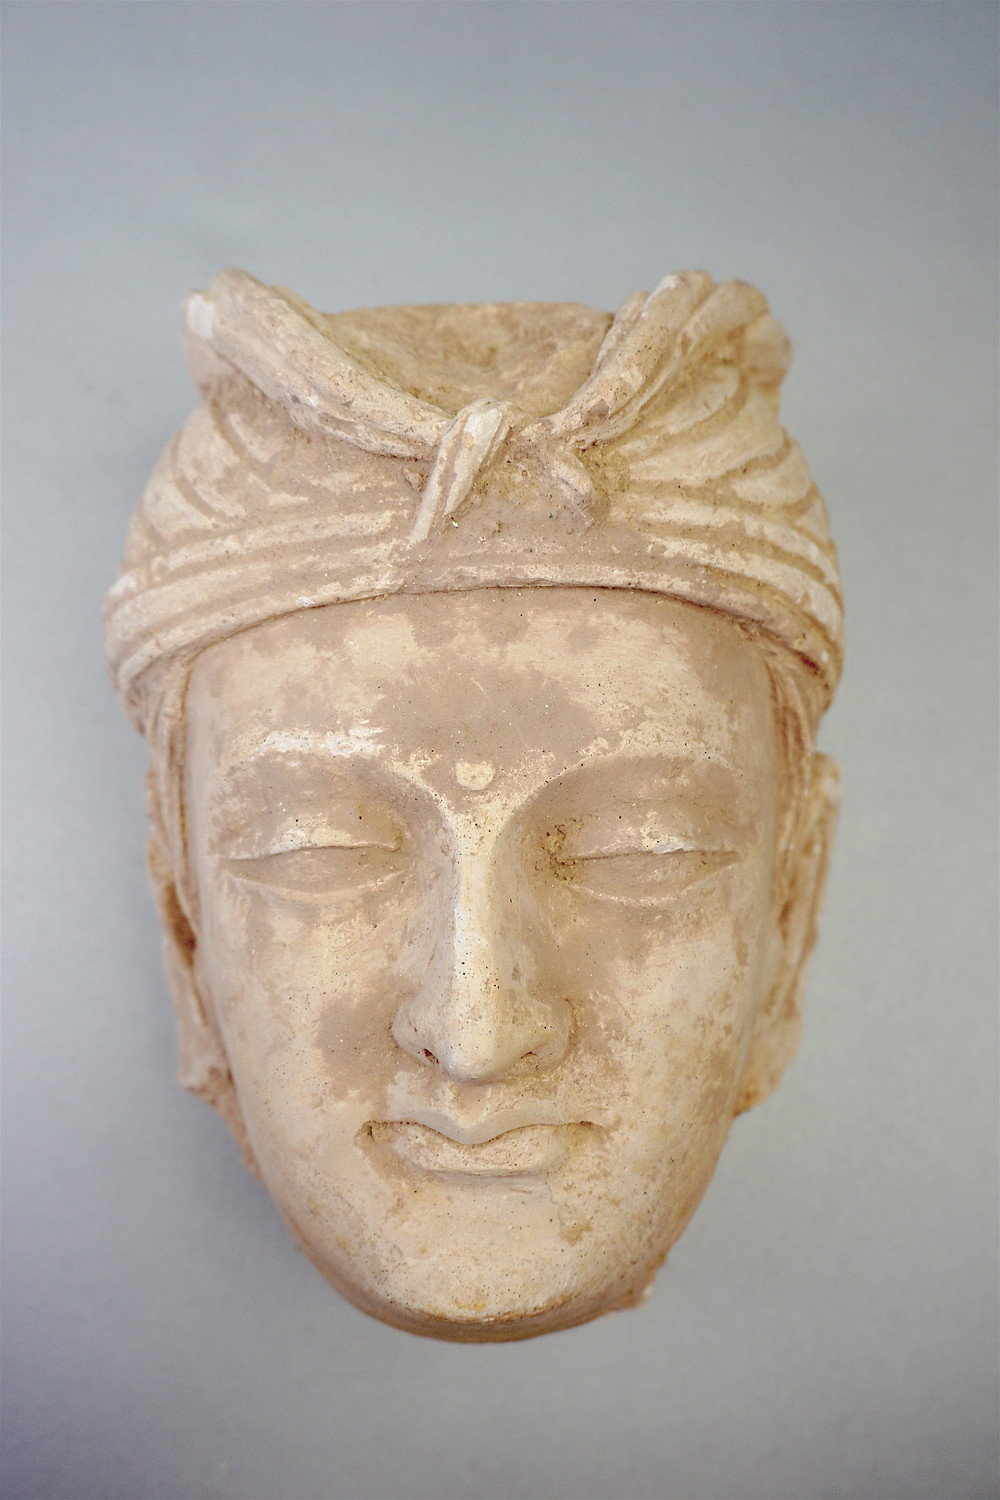 Gandhara Stucco Head of a Buddhisattva, purchased in Kashmir in 1969.